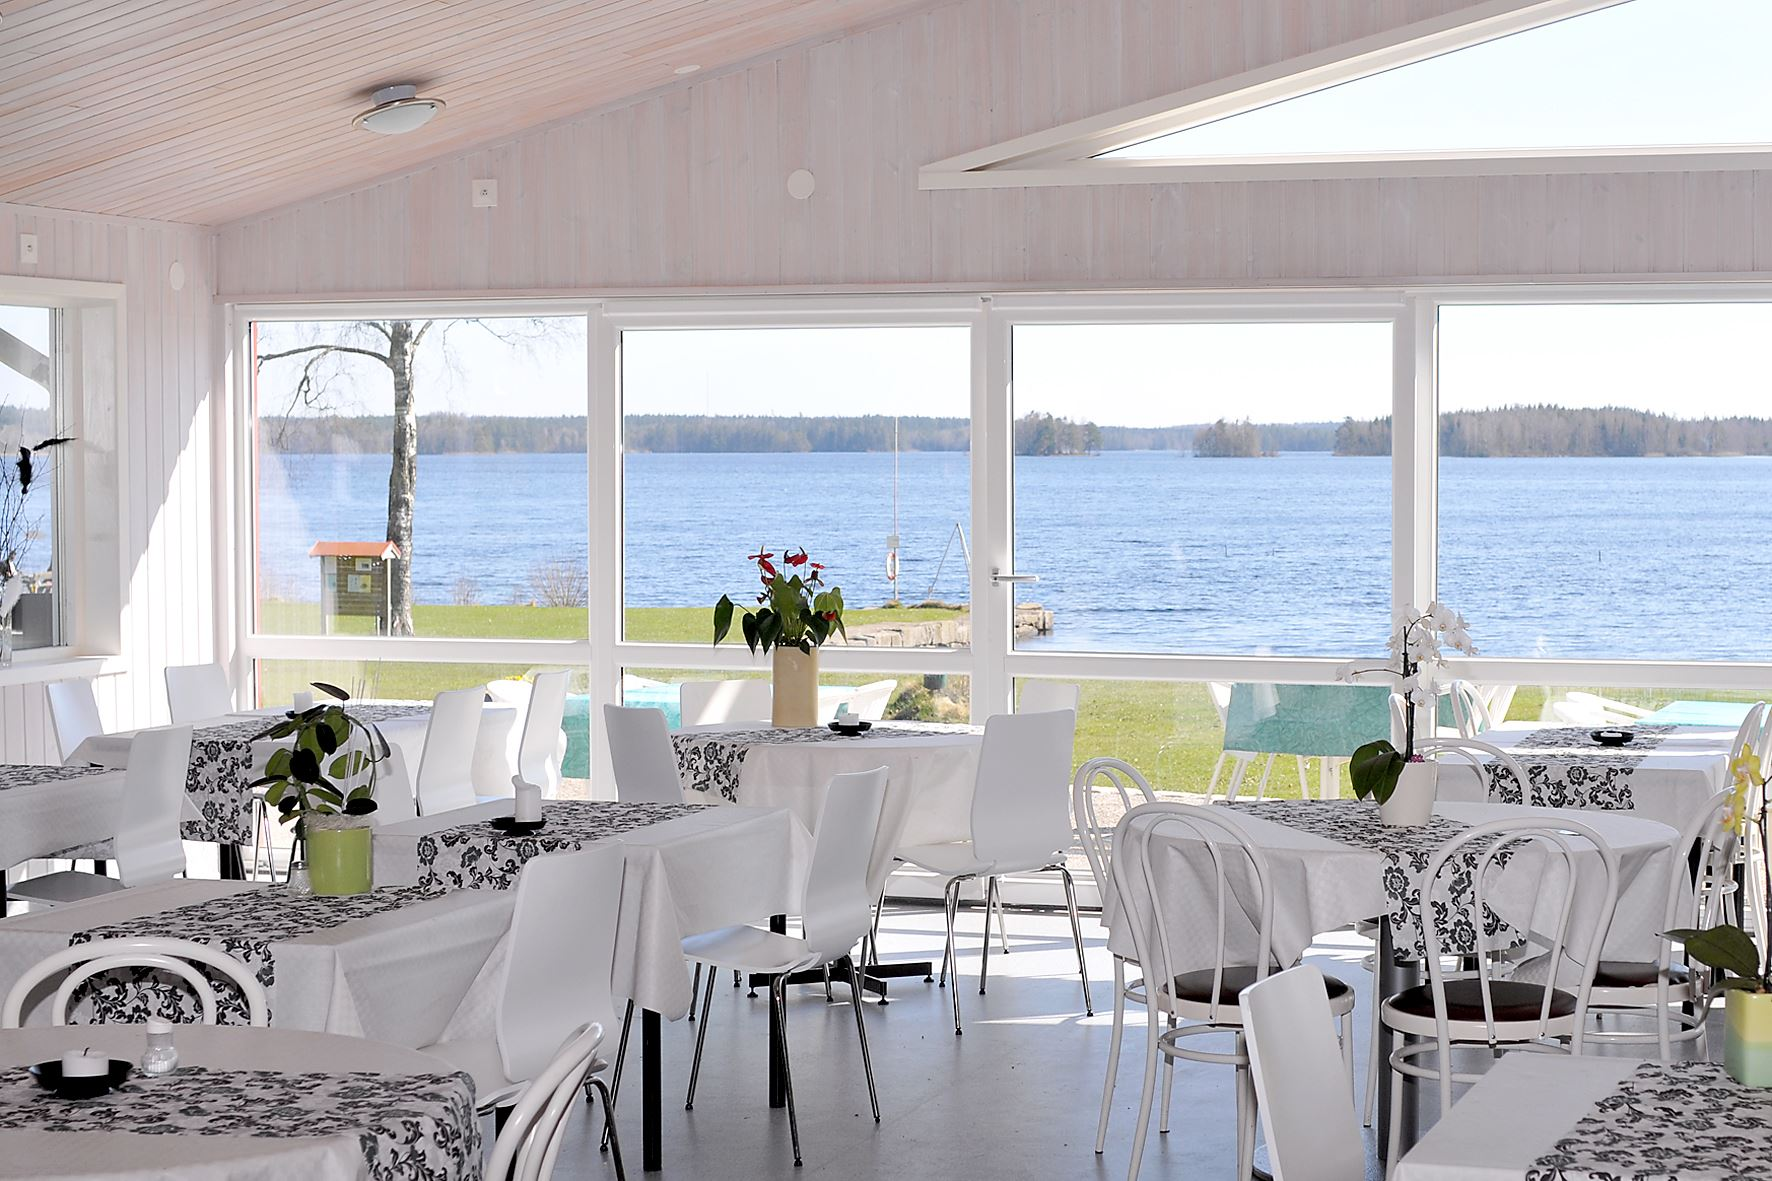 © Tingsryd Resort, Restaurangen